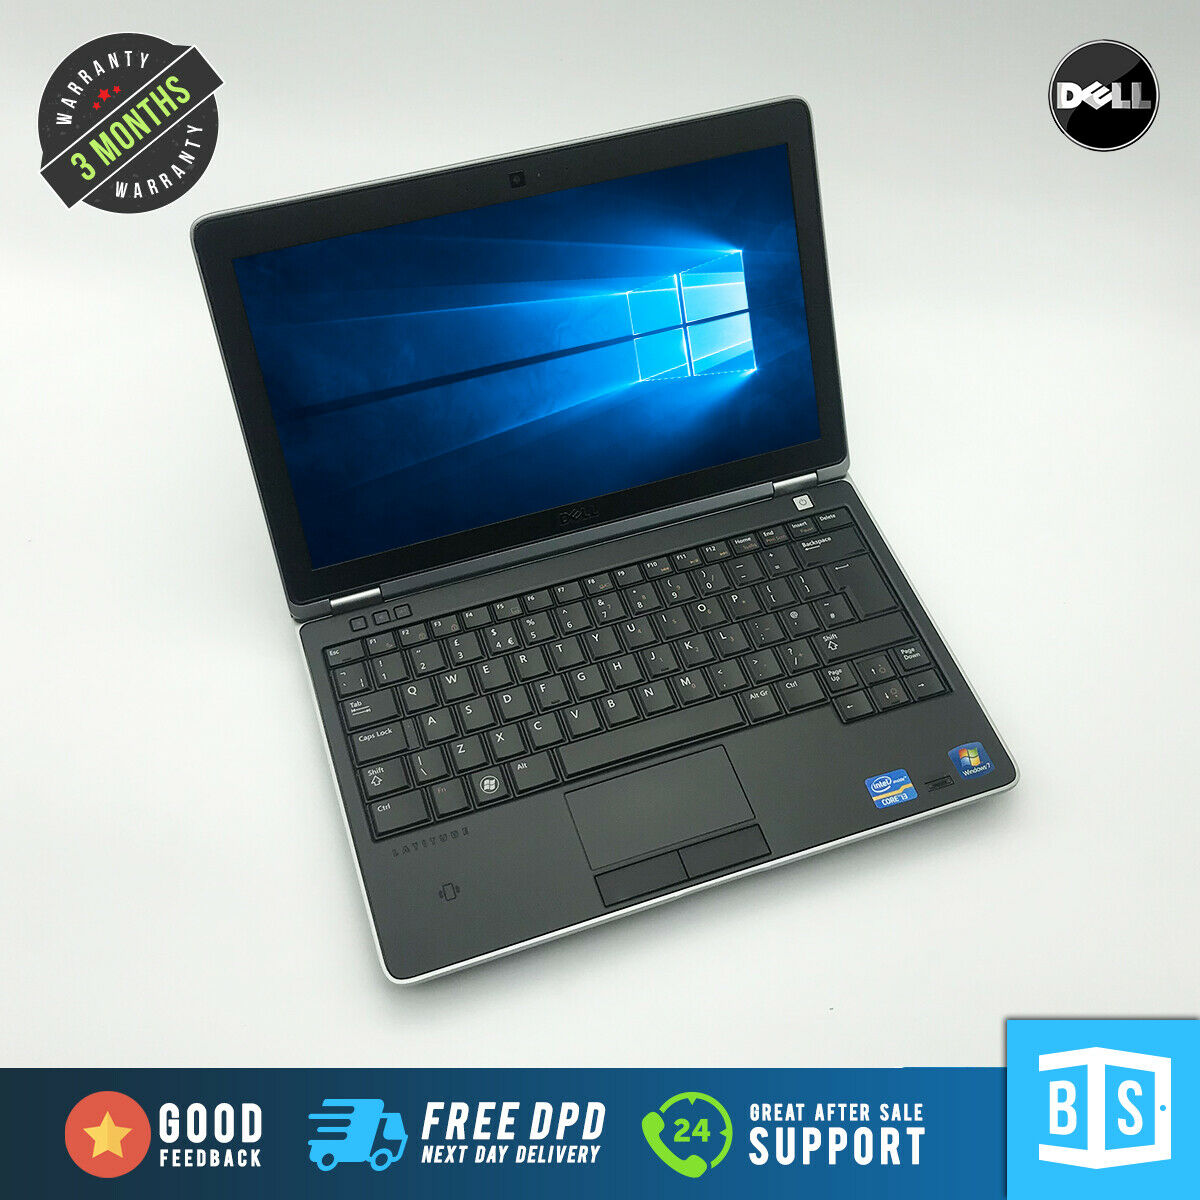 Laptop Windows - Ultra Fast Dell Latitude 6220 Laptop Core i3 256GB SSD 8GB RAM Win 10 MS Office